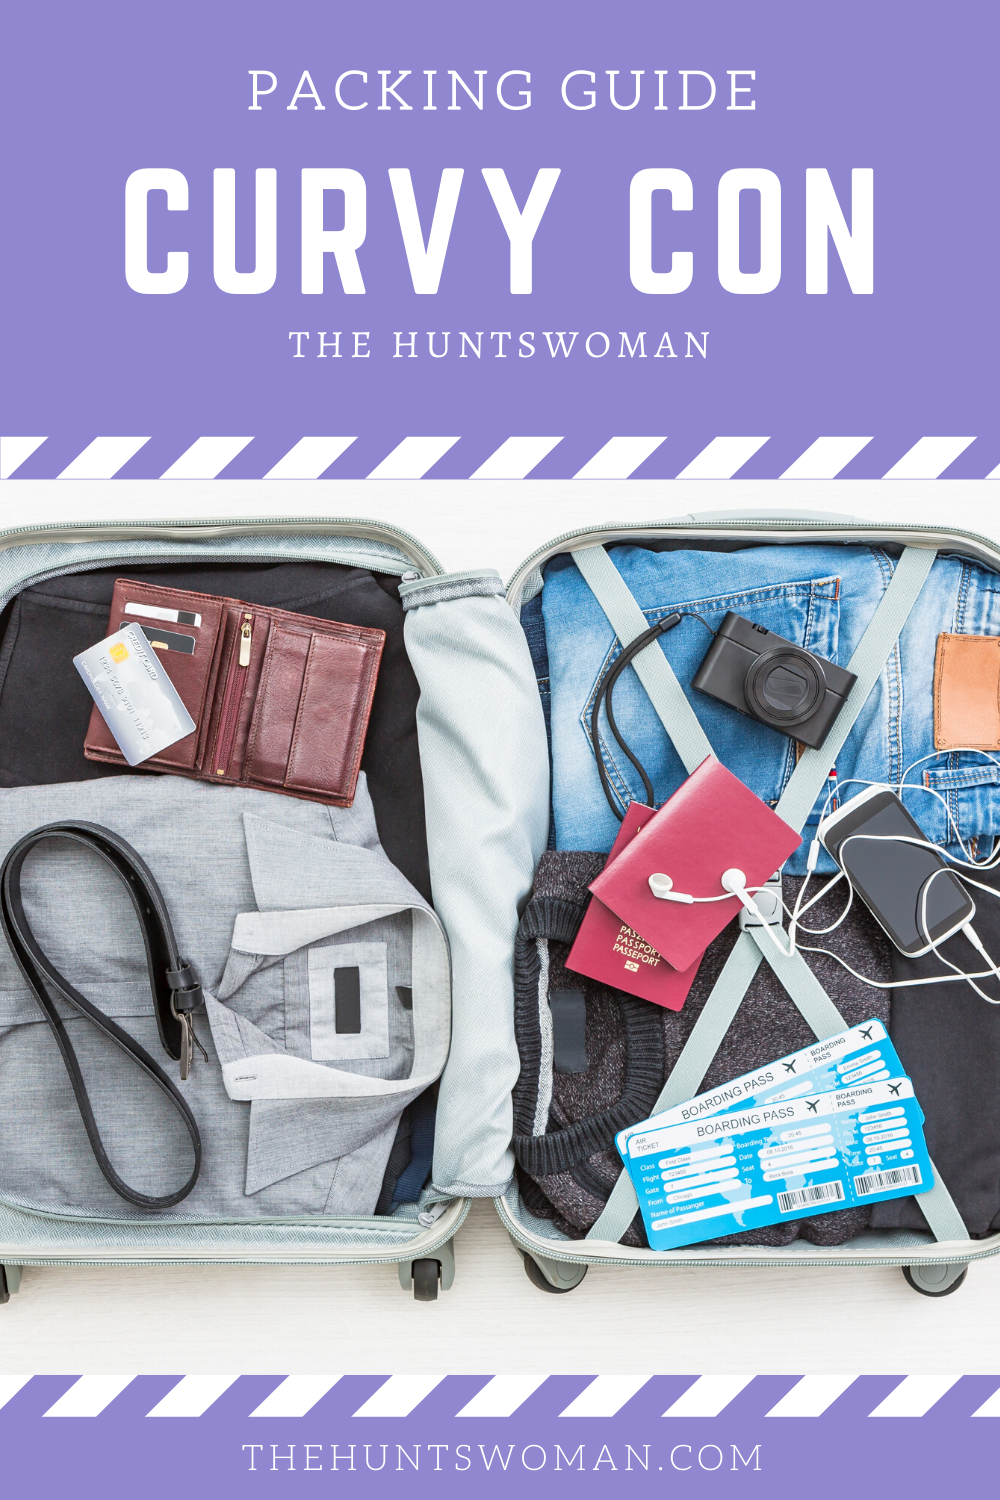 Packing guide for the curvy con